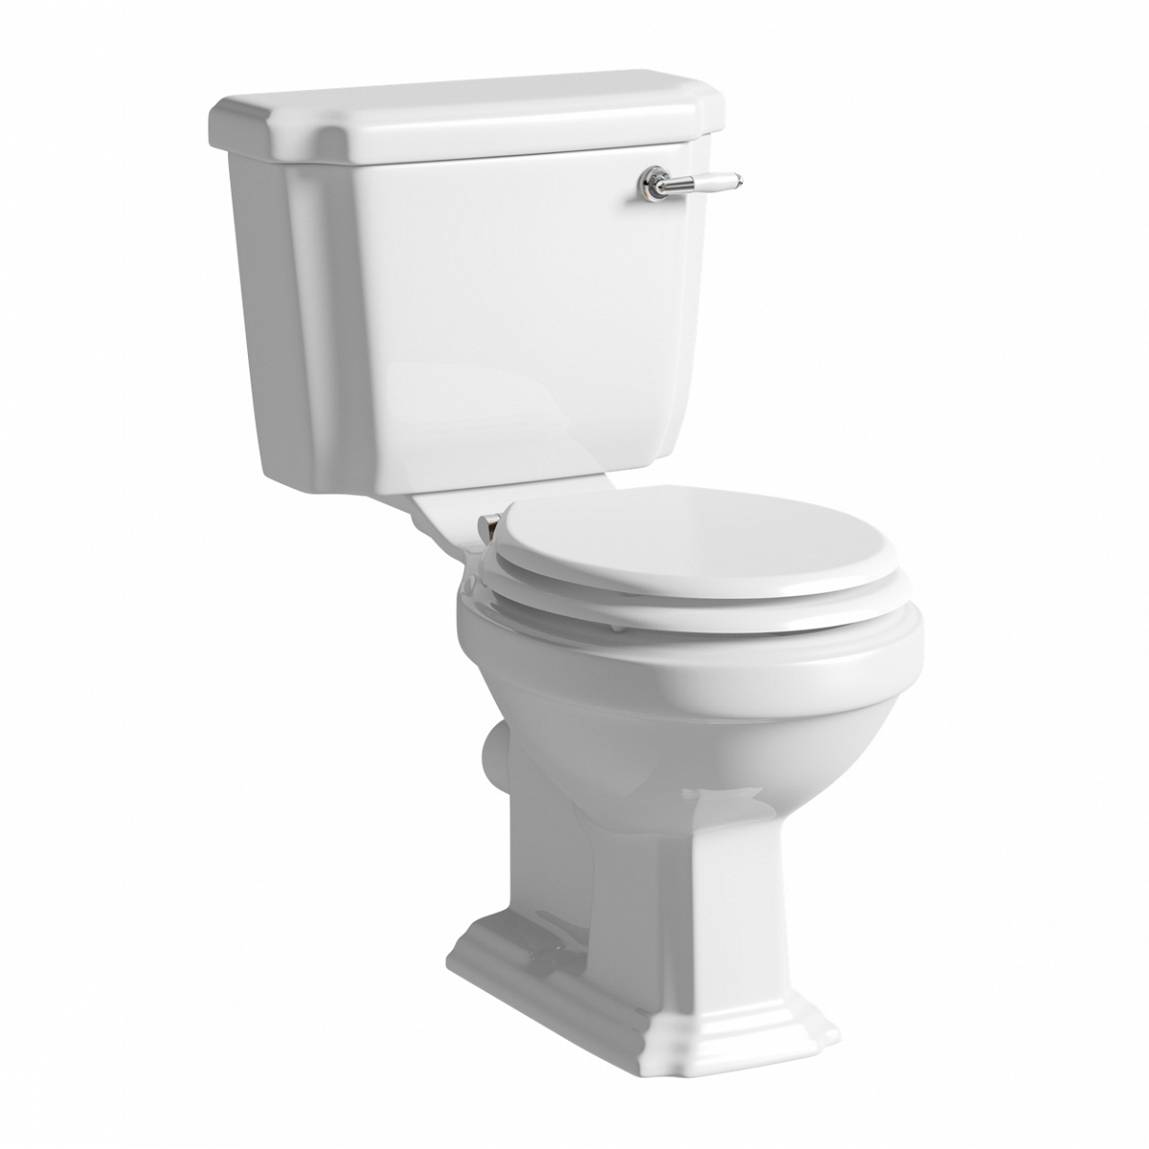 Image of Cavendish Close Coupled Toilet with White Seat and Ceramic Handle Flush